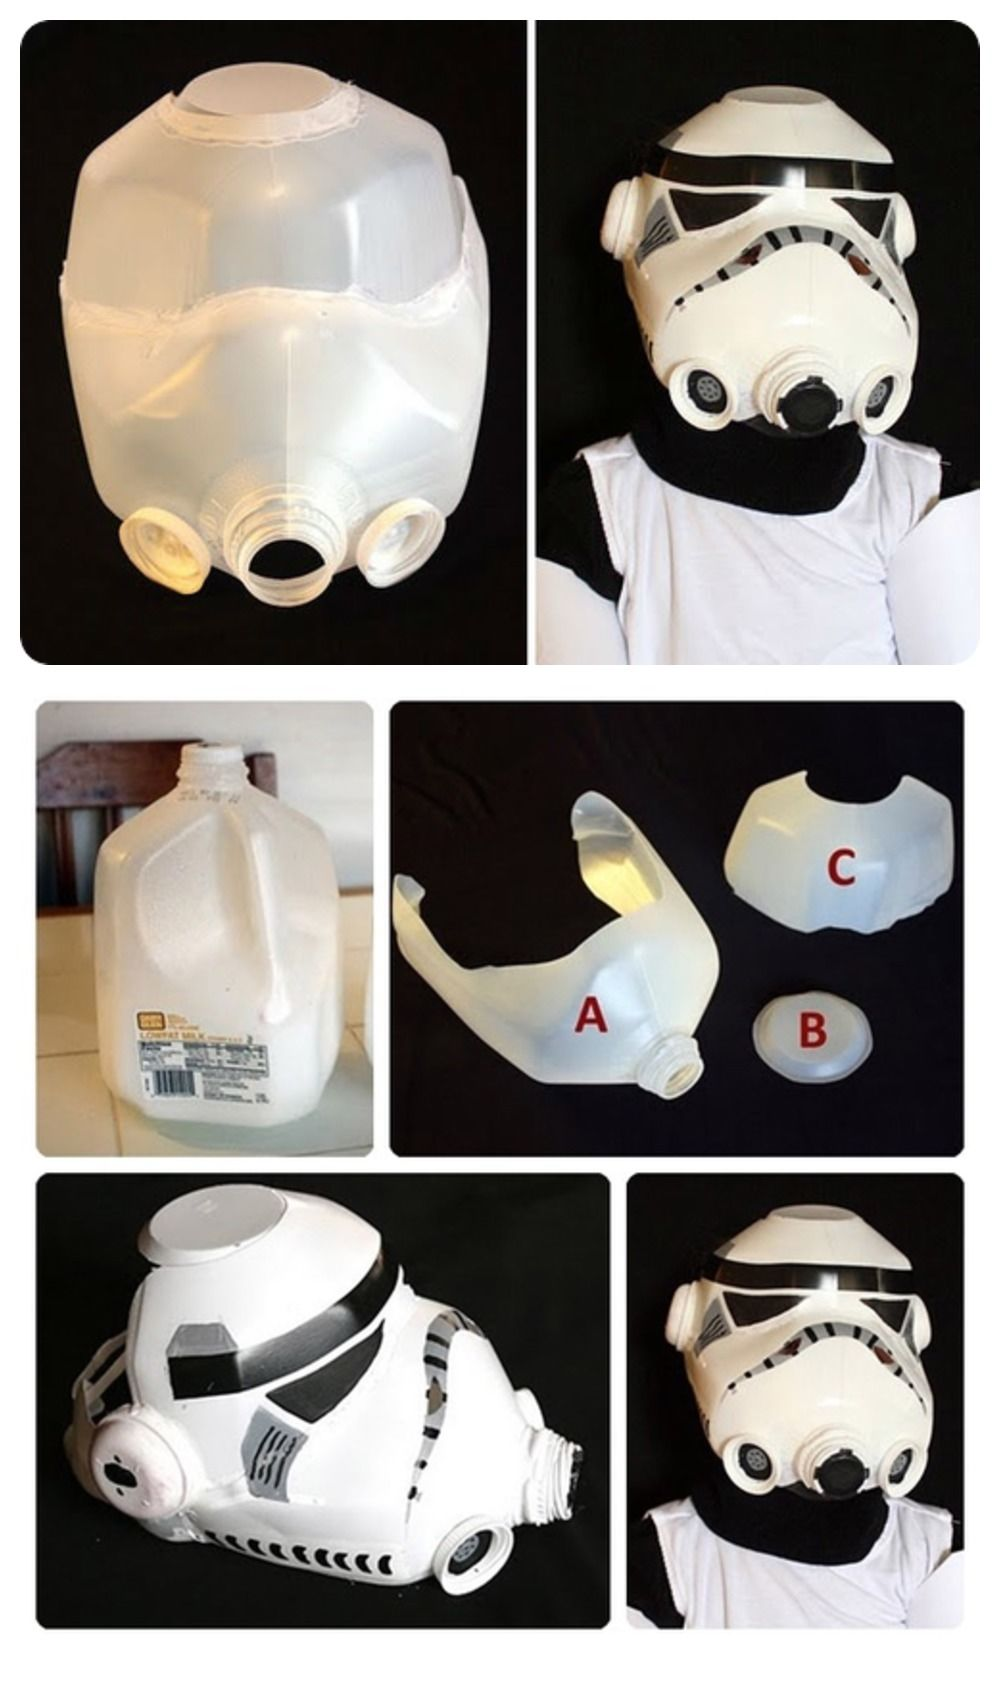 Diy storm trooper helmet pictures photos and images for facebook diy storm trooper helmet solutioingenieria Image collections